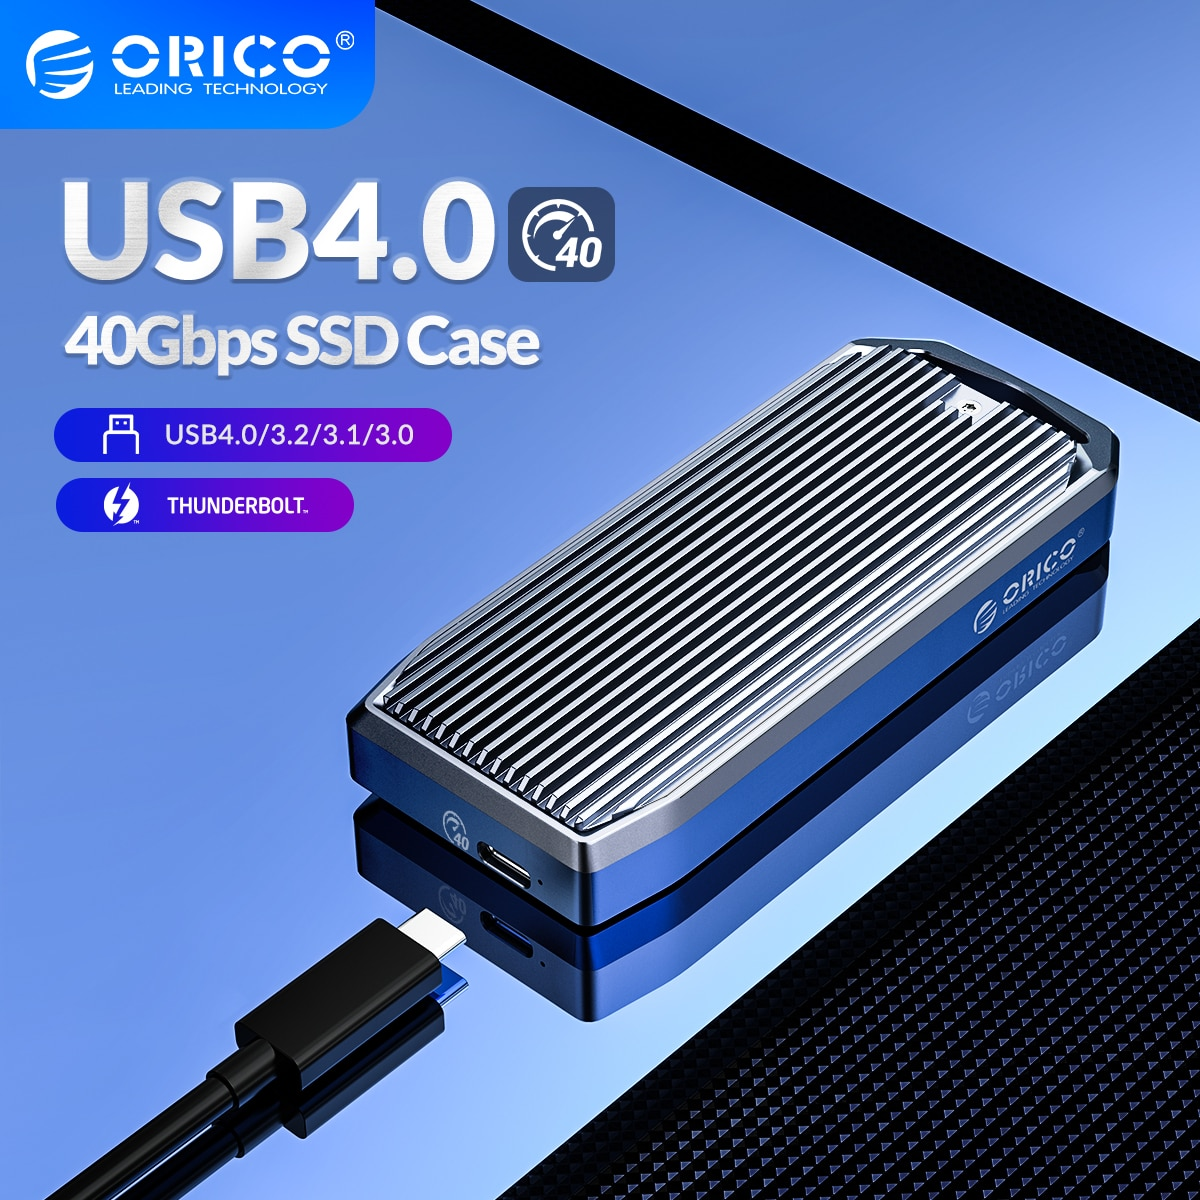 ORICO LSDT USB4.0 M.2 SSD Case 40Gbps M2 NVMe Case Compatible with Thunderbolt 3 4 USB3.2 USB 3.1 3.0 Type-C Multiple Protocols